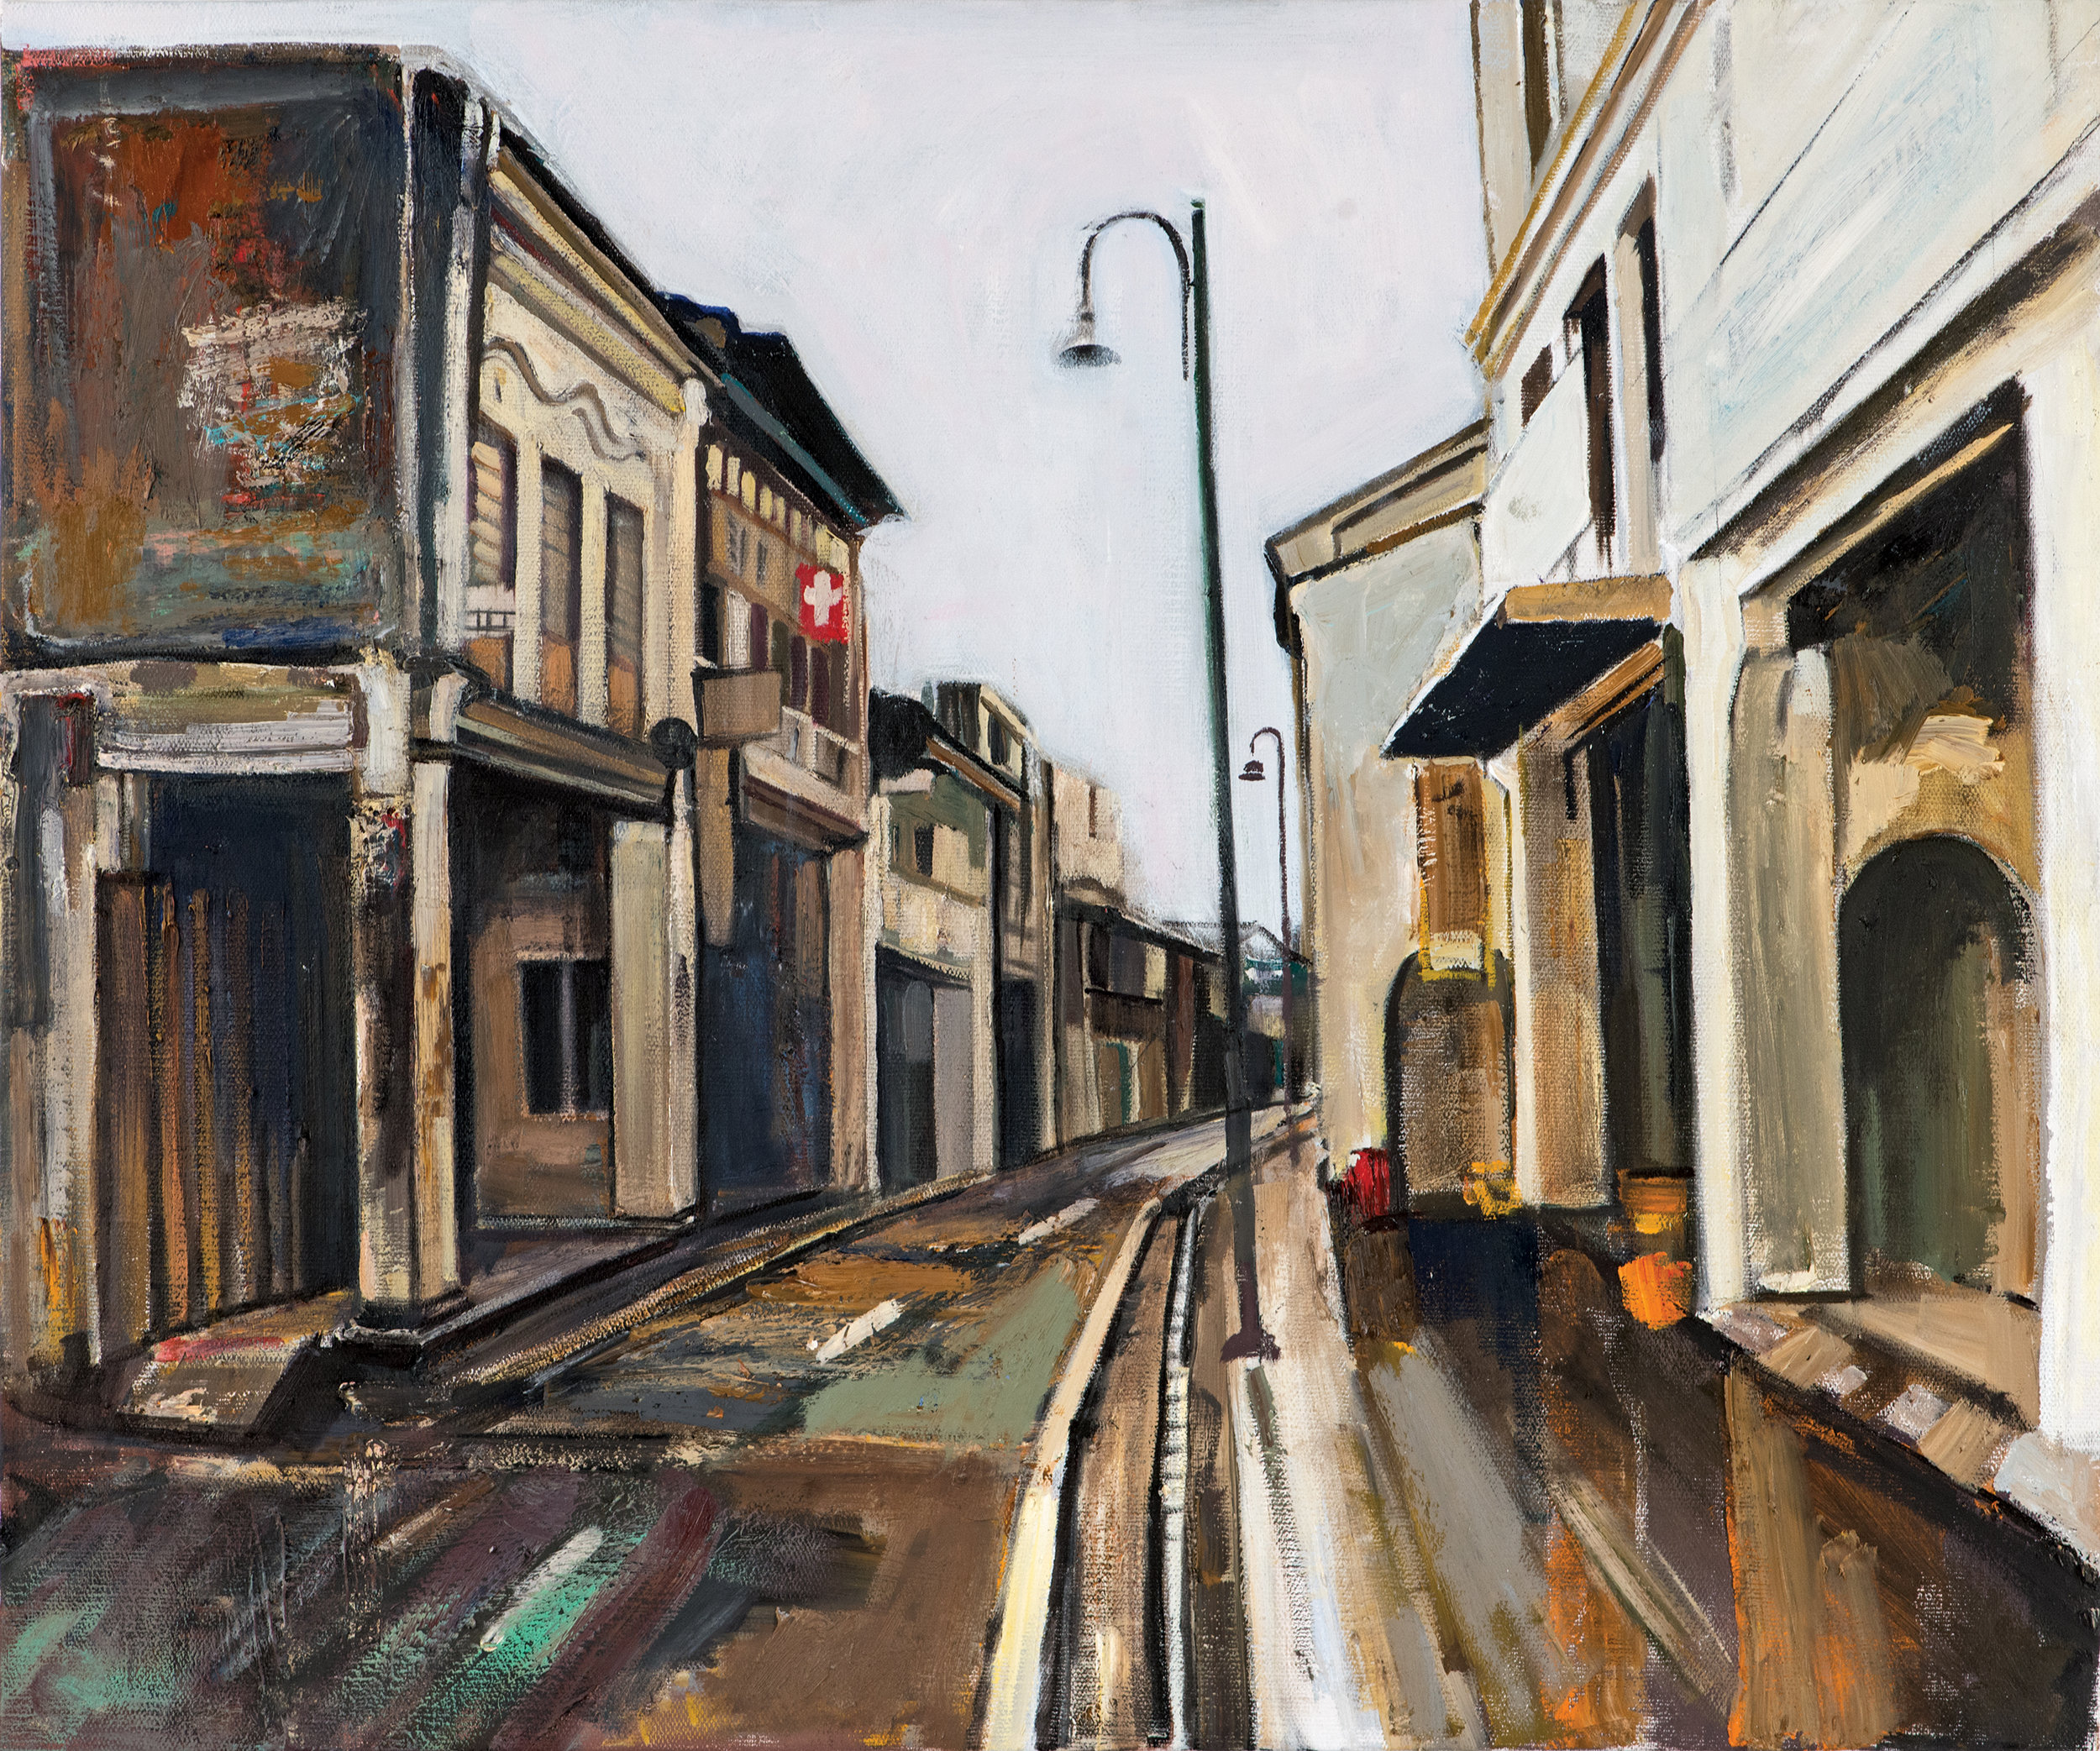 Armenian Street, Georgetown , Ararat Sarkissian,2018, oil on canvas, 65 x 54 cm   The Armenians came to the island of Penang, Malaysia, at the end of the 18th century. Today the city's Armenian Street (Lebuh Armenian), which is located within the city's UNESCO World Heritage Site, is a popular tourist destination.  The small number of Armenians in Penang were mainly merchants and hoteliers. The well-known Sarkies brothers established the Eastern and Oriental Hotel (The E&O) and later they ran the Crag Hotel. Dr Thaddeus Avetoom founded the Georgetown Dispensary, and Anthony A. Anthony established an export firm, whose name still exists, as does the E&O and the Dispensary.  The Armenian Apostolic Church of St. Gregory the Illuminator in Bishop Street was established through the efforts of philanthropists Carapiet Arackell and Catchatoor Galstaun. The Church was demolished in 1909 and a monument was erected to commemorate it. In the 1930s, it too was demolished and the remains of Armenians buried in the cemetery were re-interred in a special plot in the Western Road cemetery.